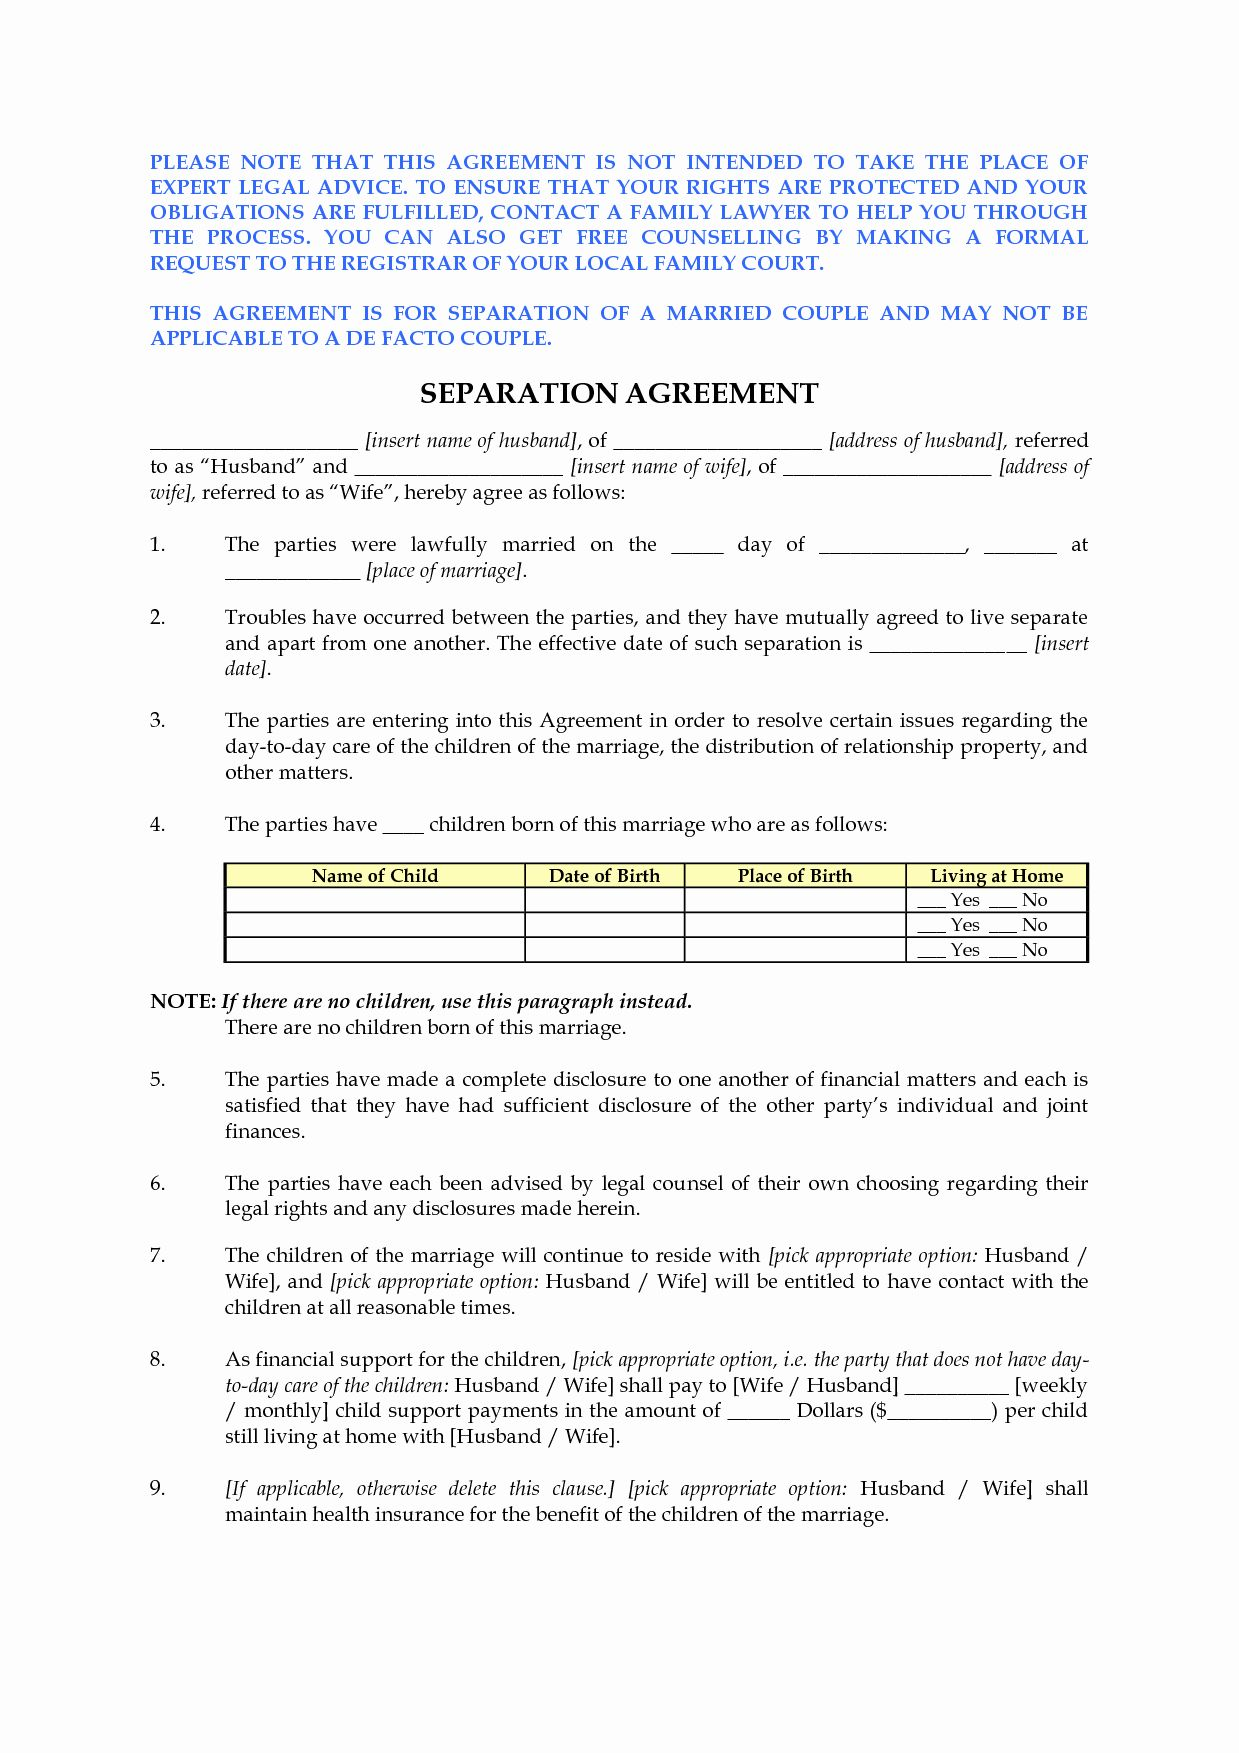 Divorce Agreement Template Free Unique Best S Of Free Marital Separation Agreement Forms Separation Agreement Template Separation Agreement Legal Separation